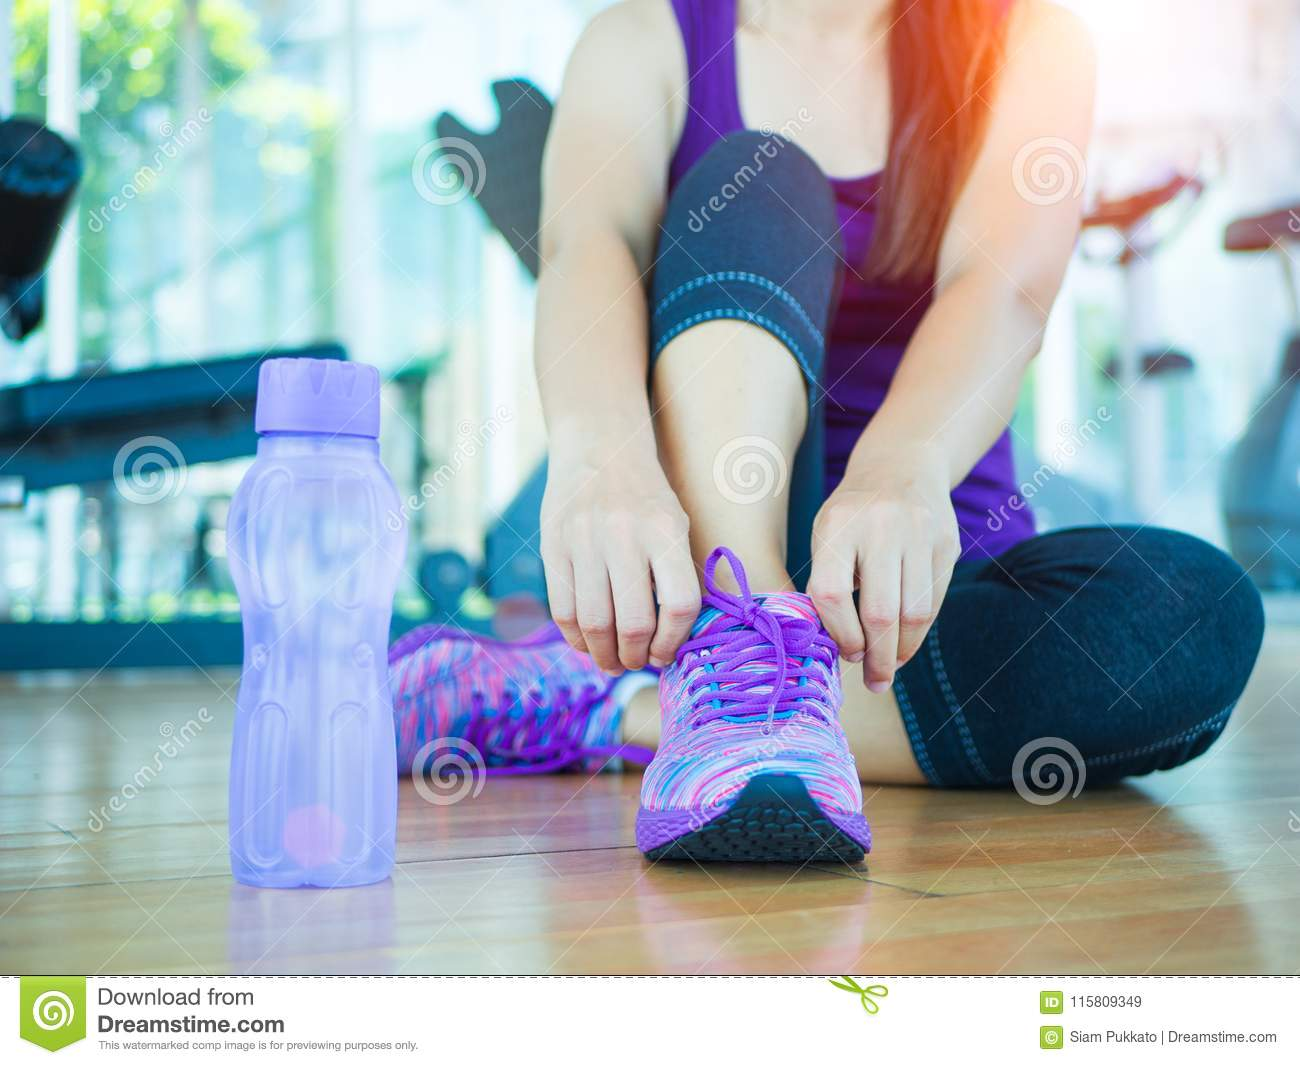 Closeup of woman tying shoe laces. Female sport fitness runner getting ready for jogging